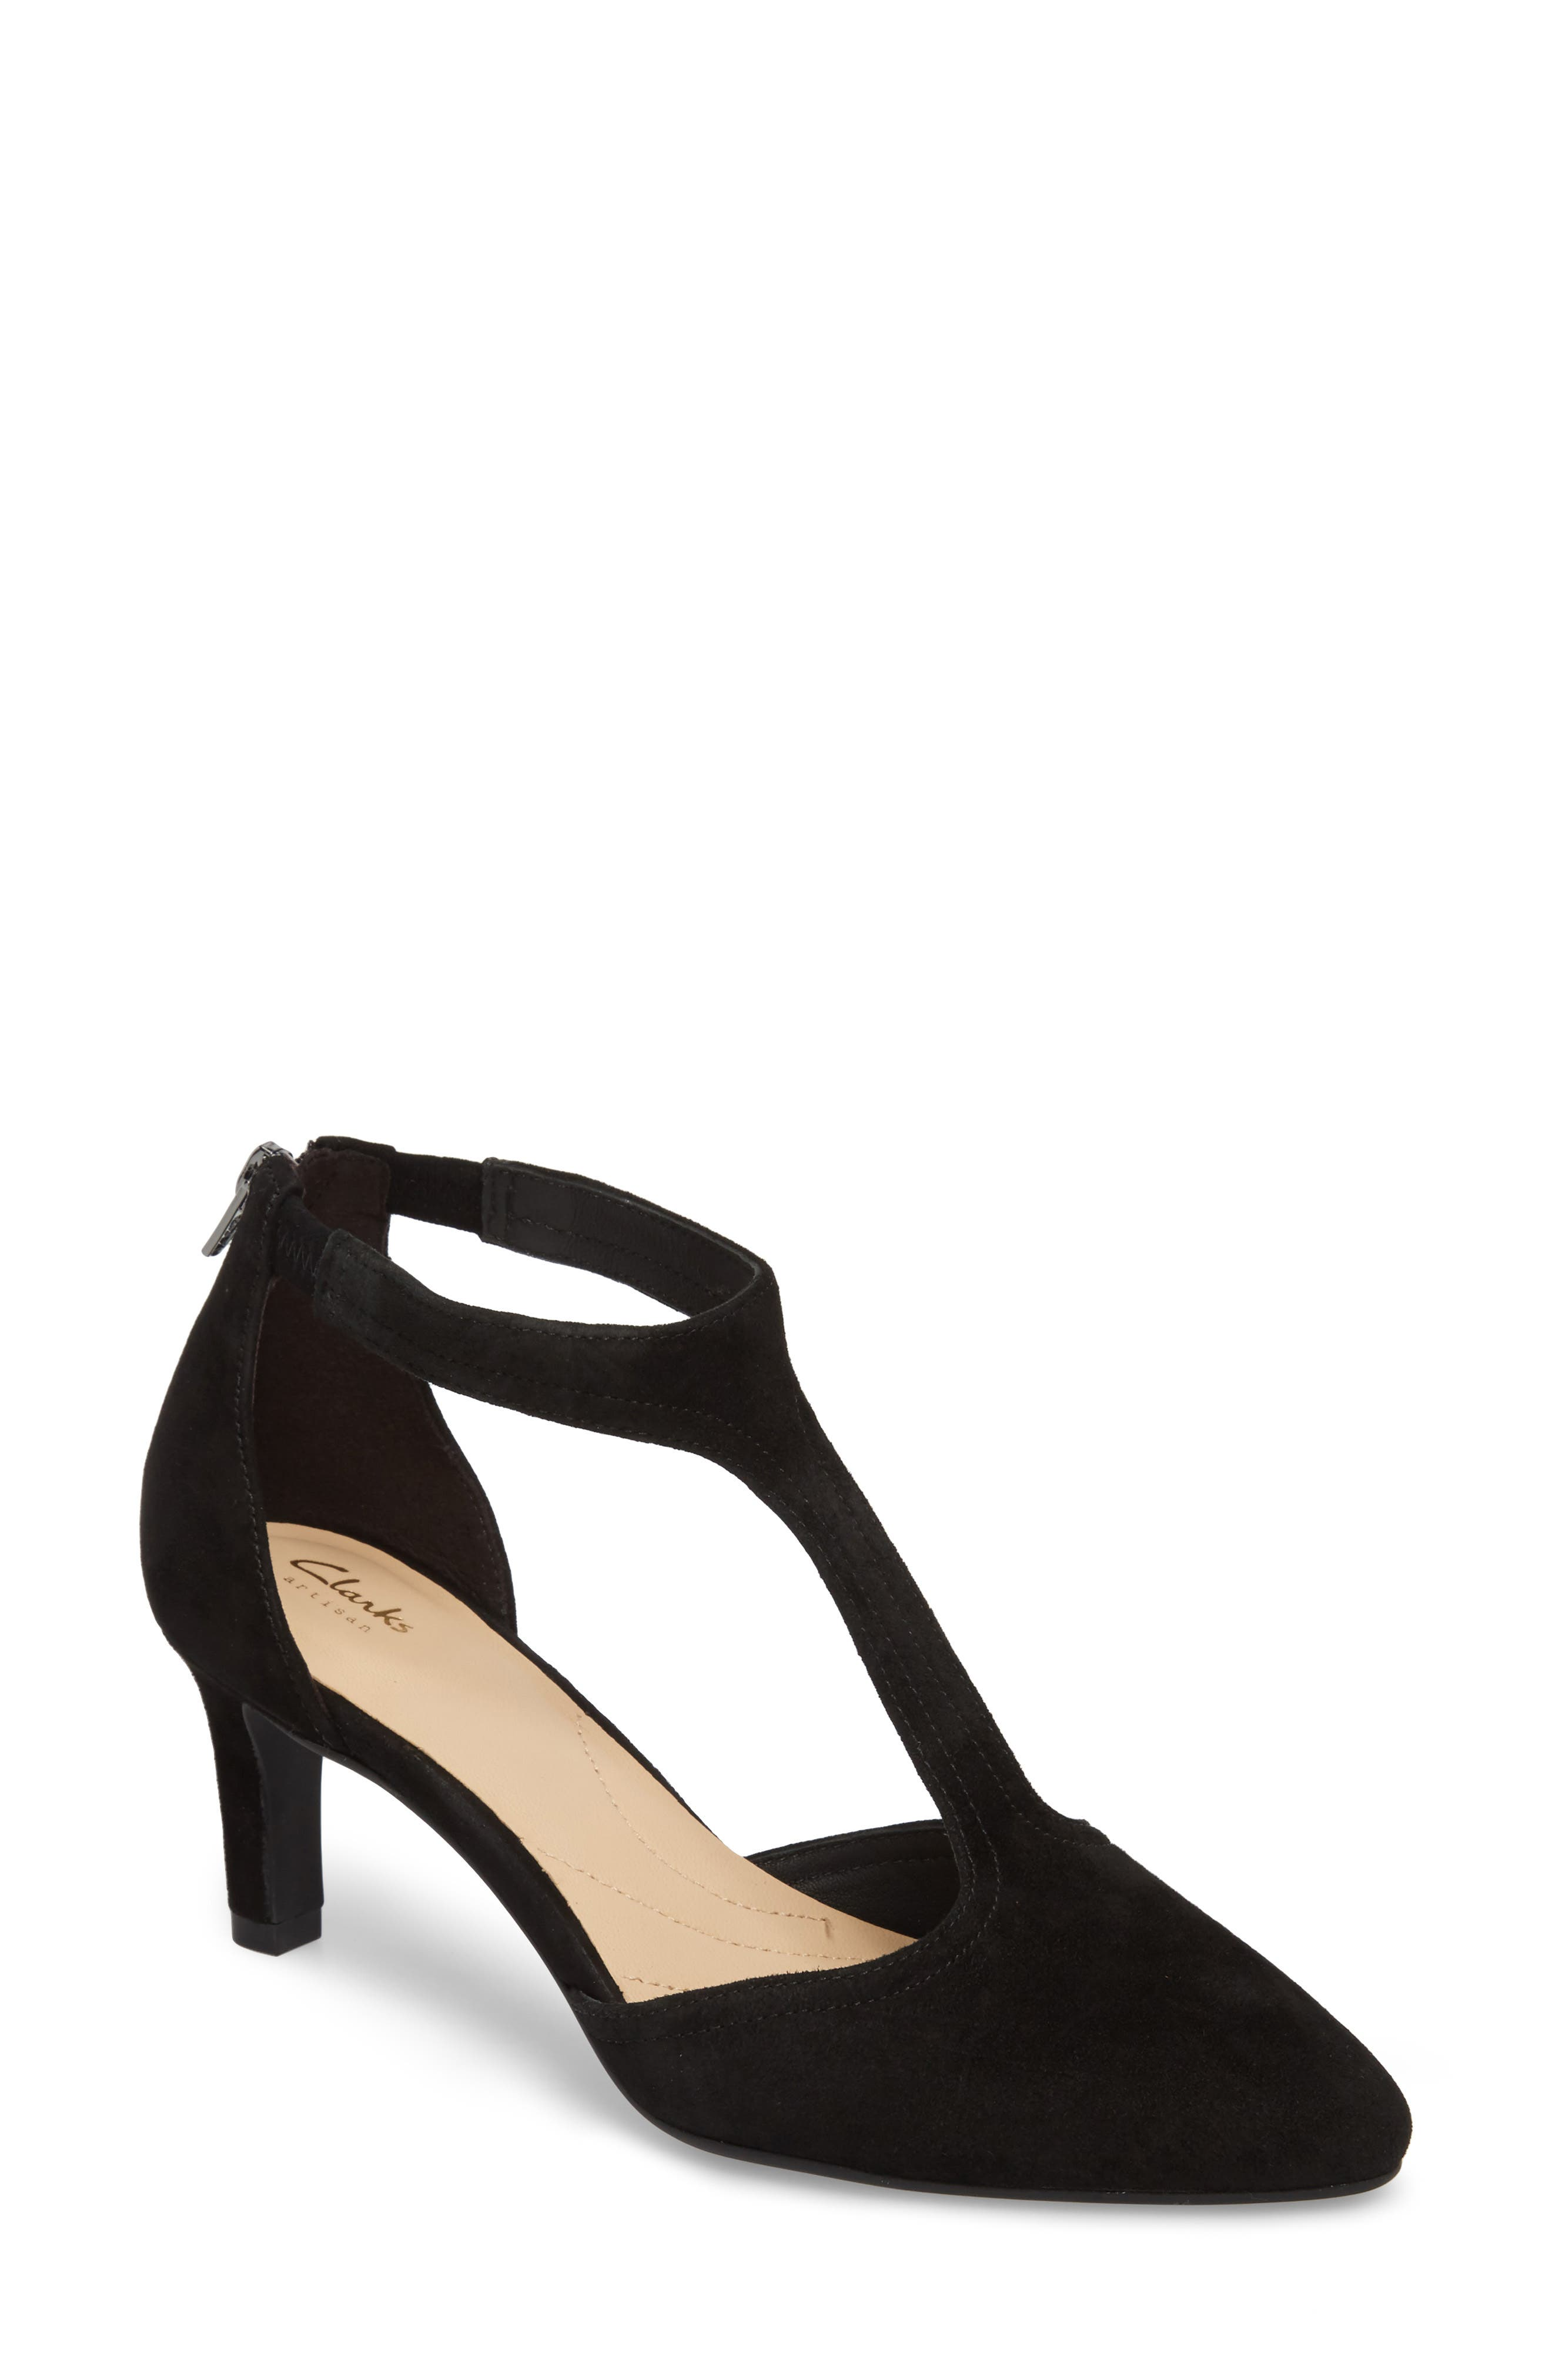 Alternate Image 1 Selected - Clarks® Calla Lily Pump (Women)